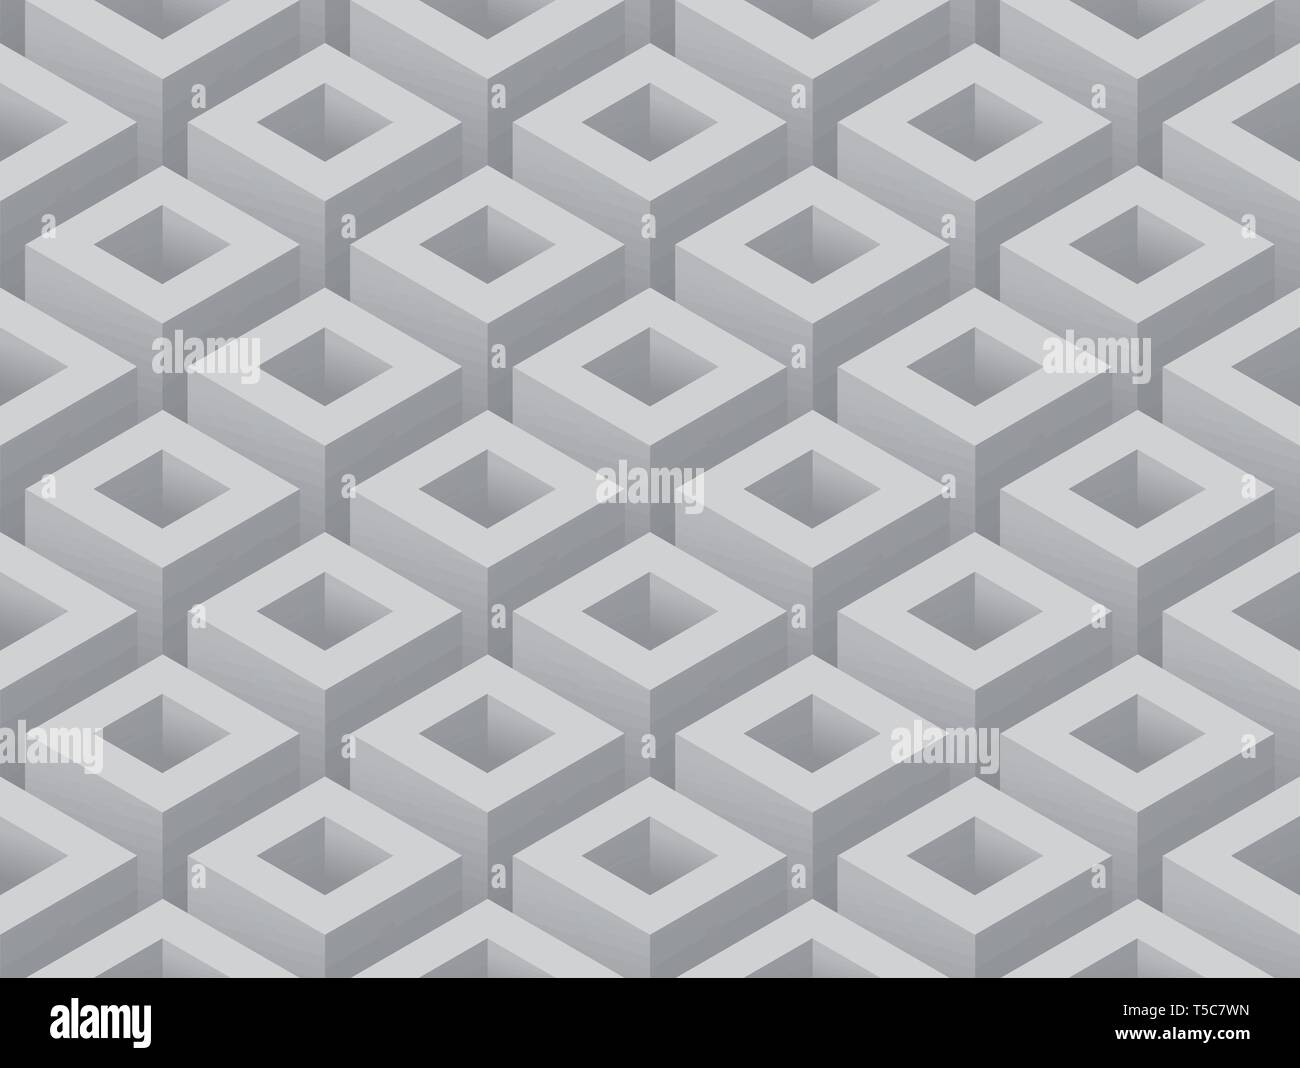 Gray Isometric cubes abstract seamless background vector illustration - Stock Image